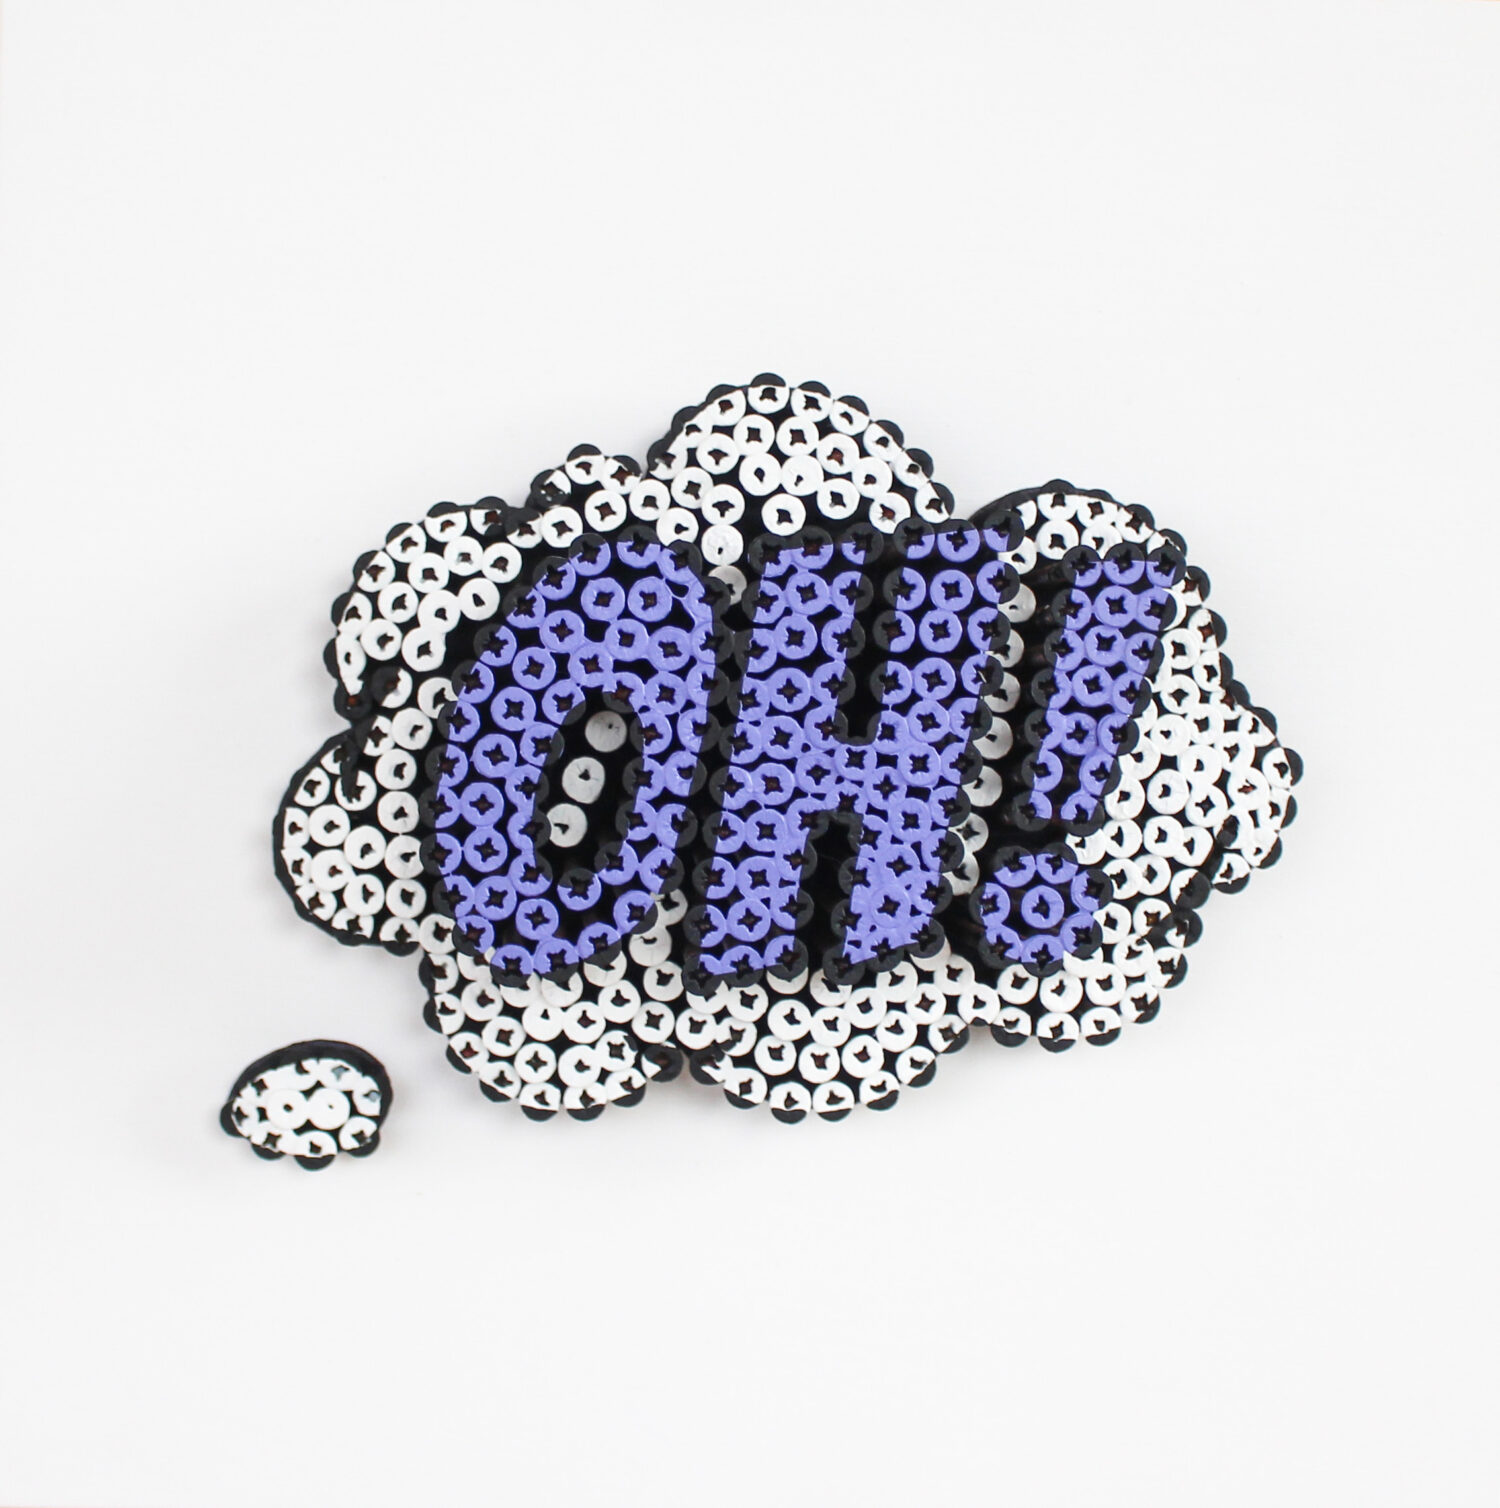 Alessandro Padovan - Screw art - Mini Oh wit